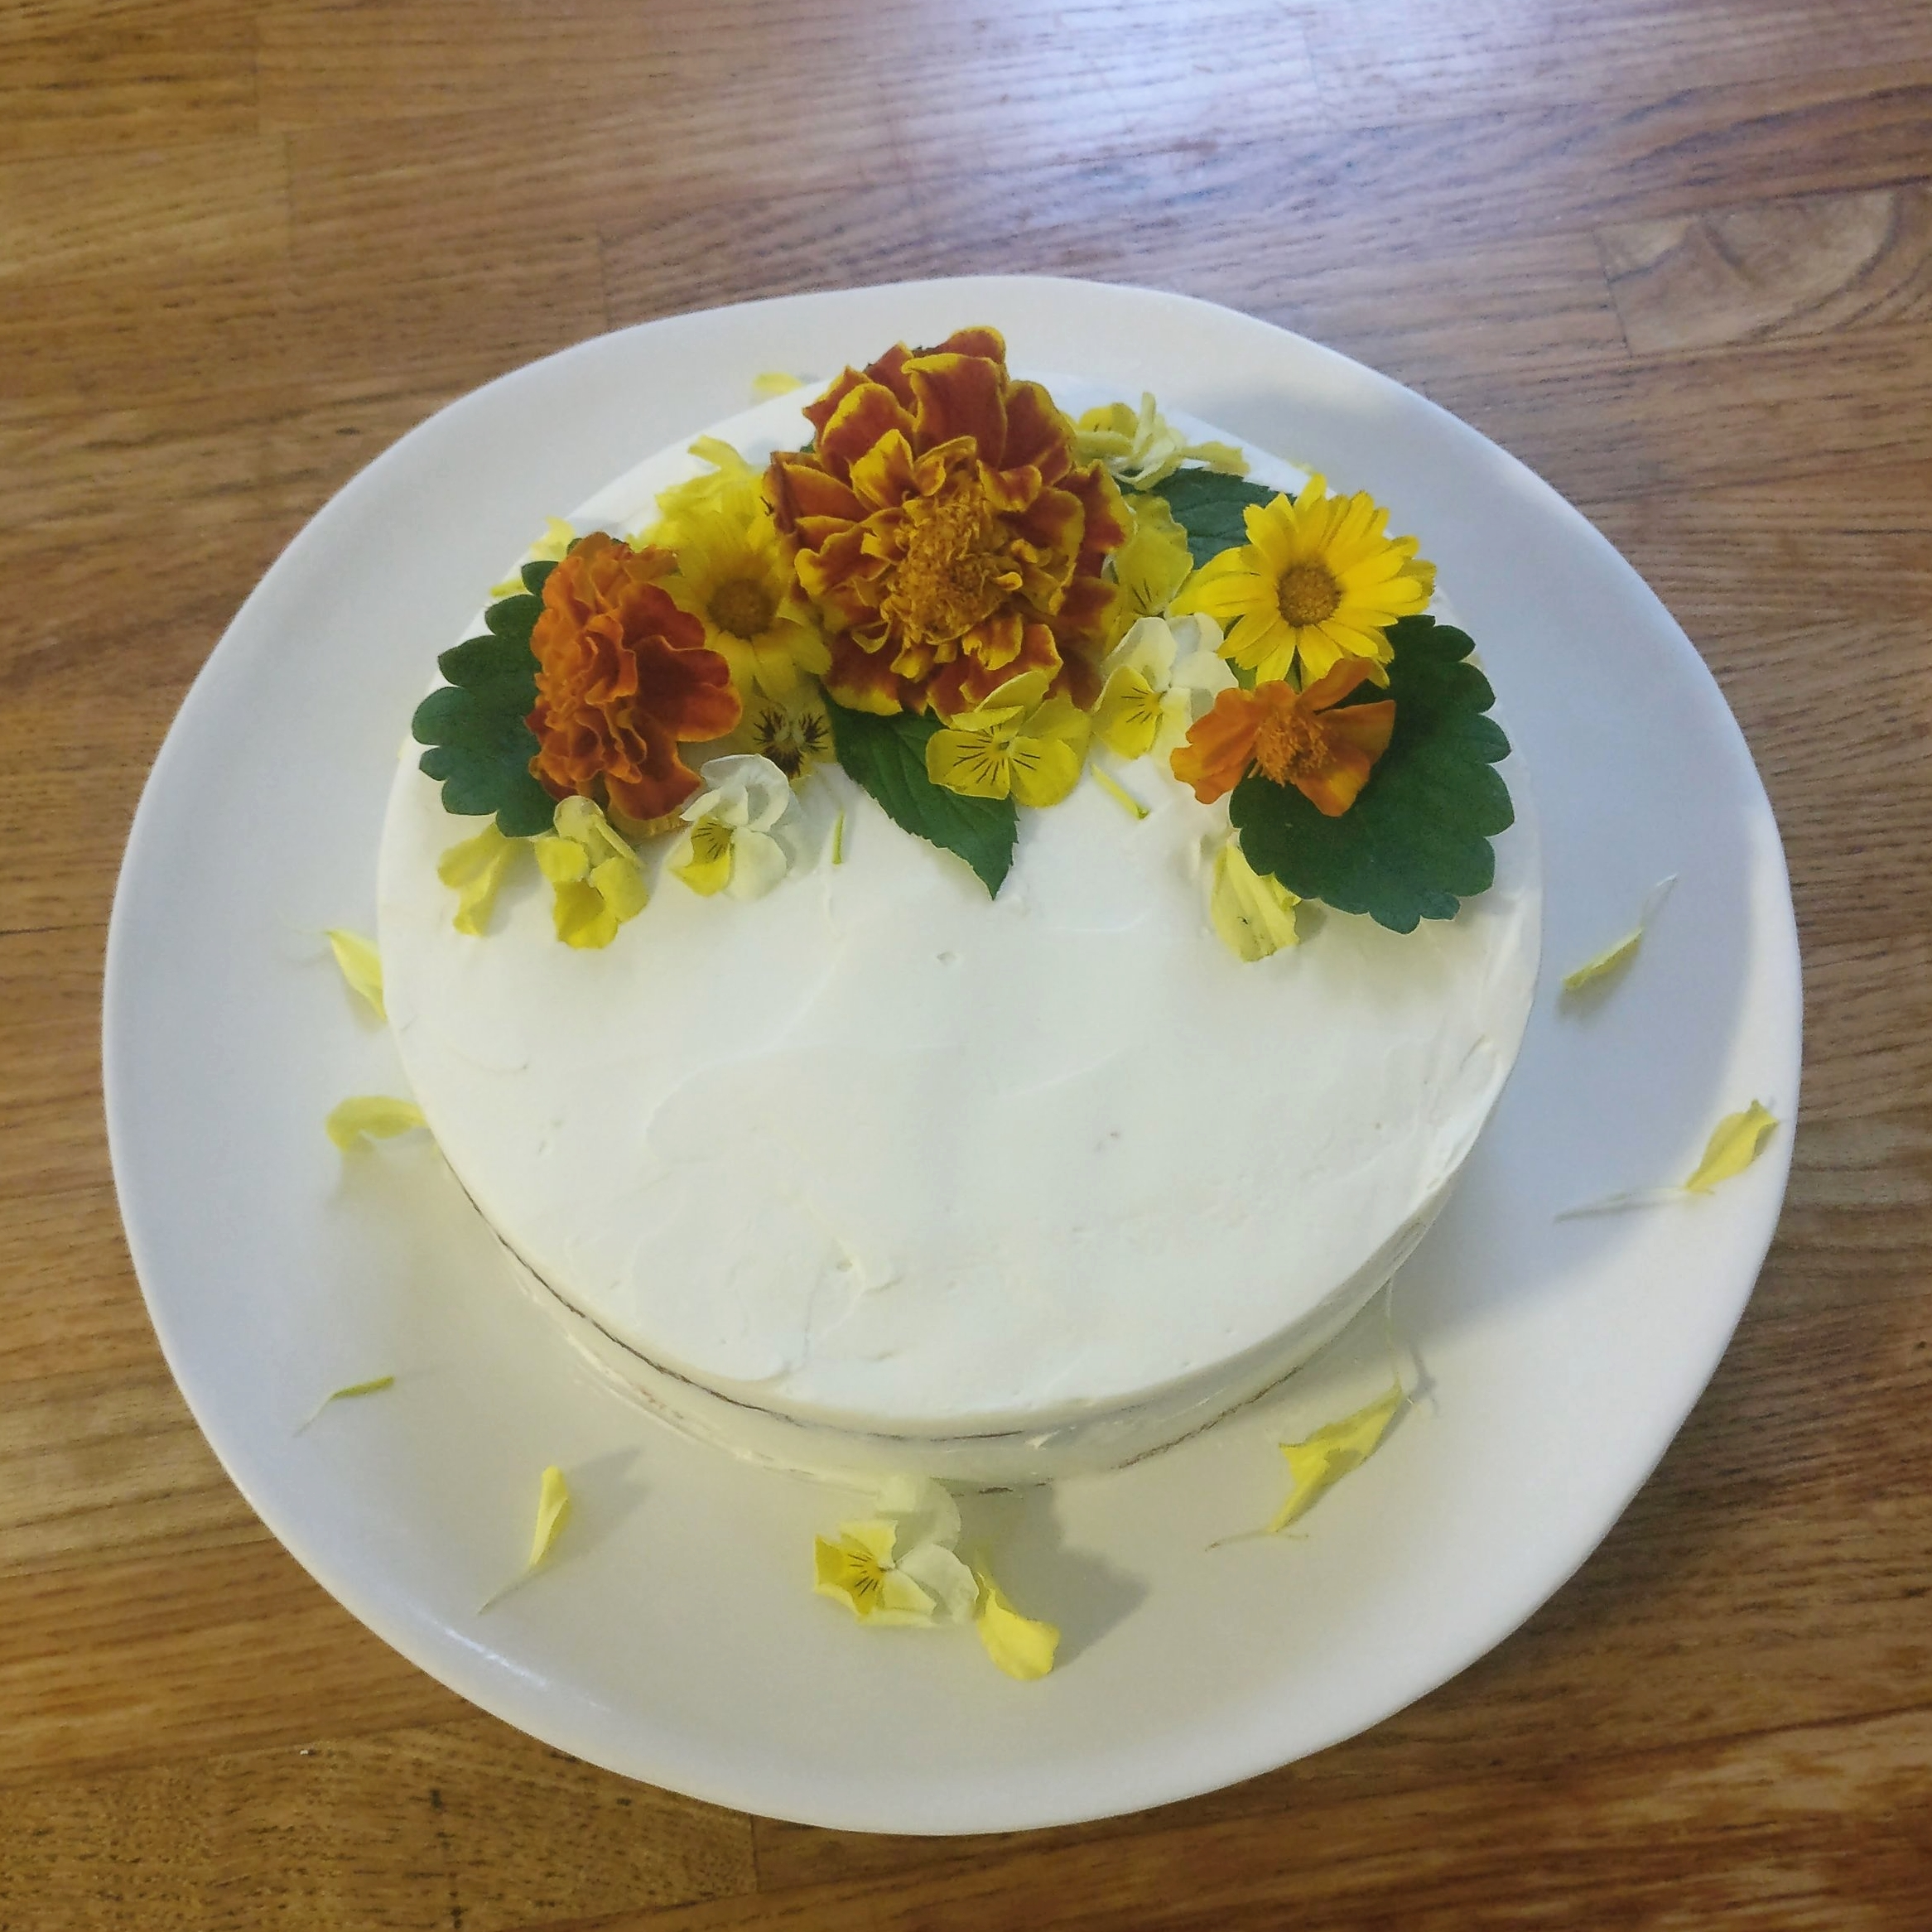 Not your average yellow cake